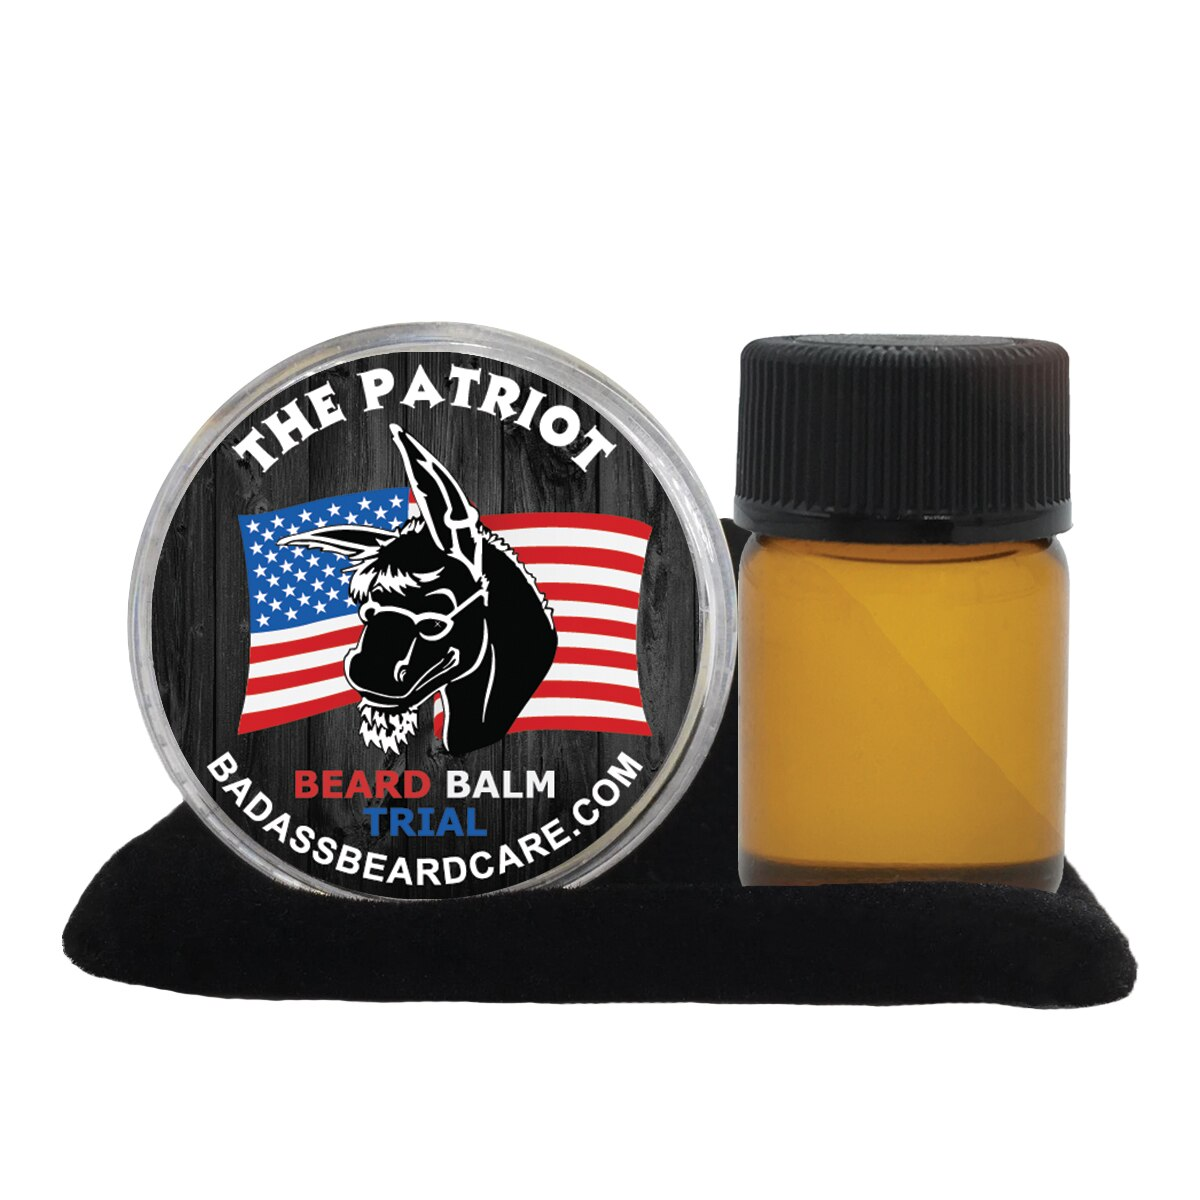 The Patriot Badass Trial Pack